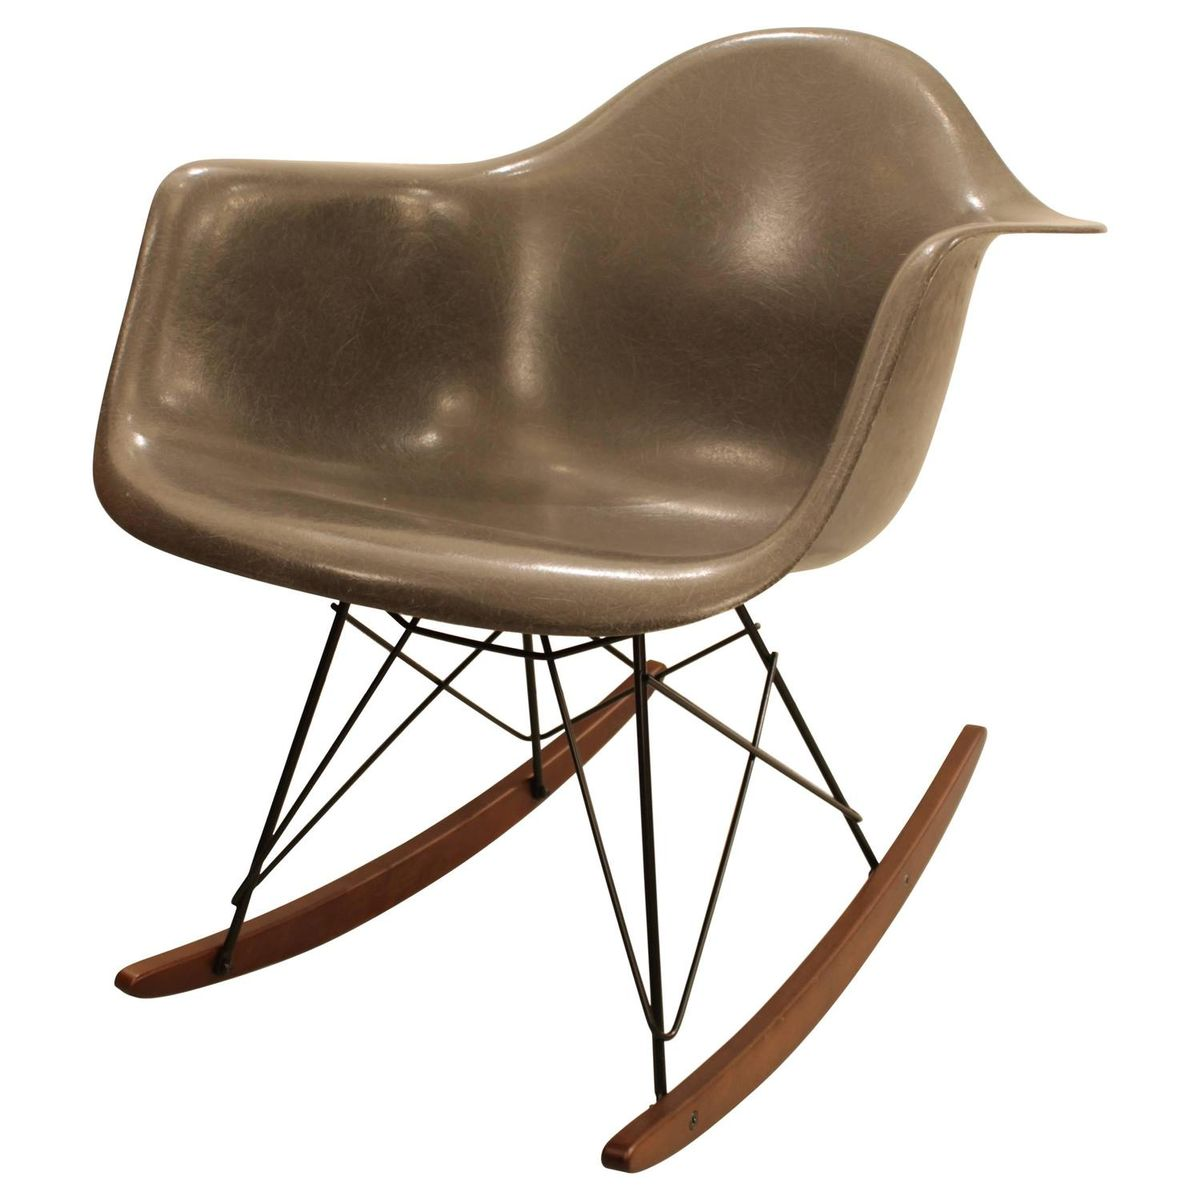 grauer rocking chair von charles ray eames f r herman miller 1960er bei pamono kaufen. Black Bedroom Furniture Sets. Home Design Ideas